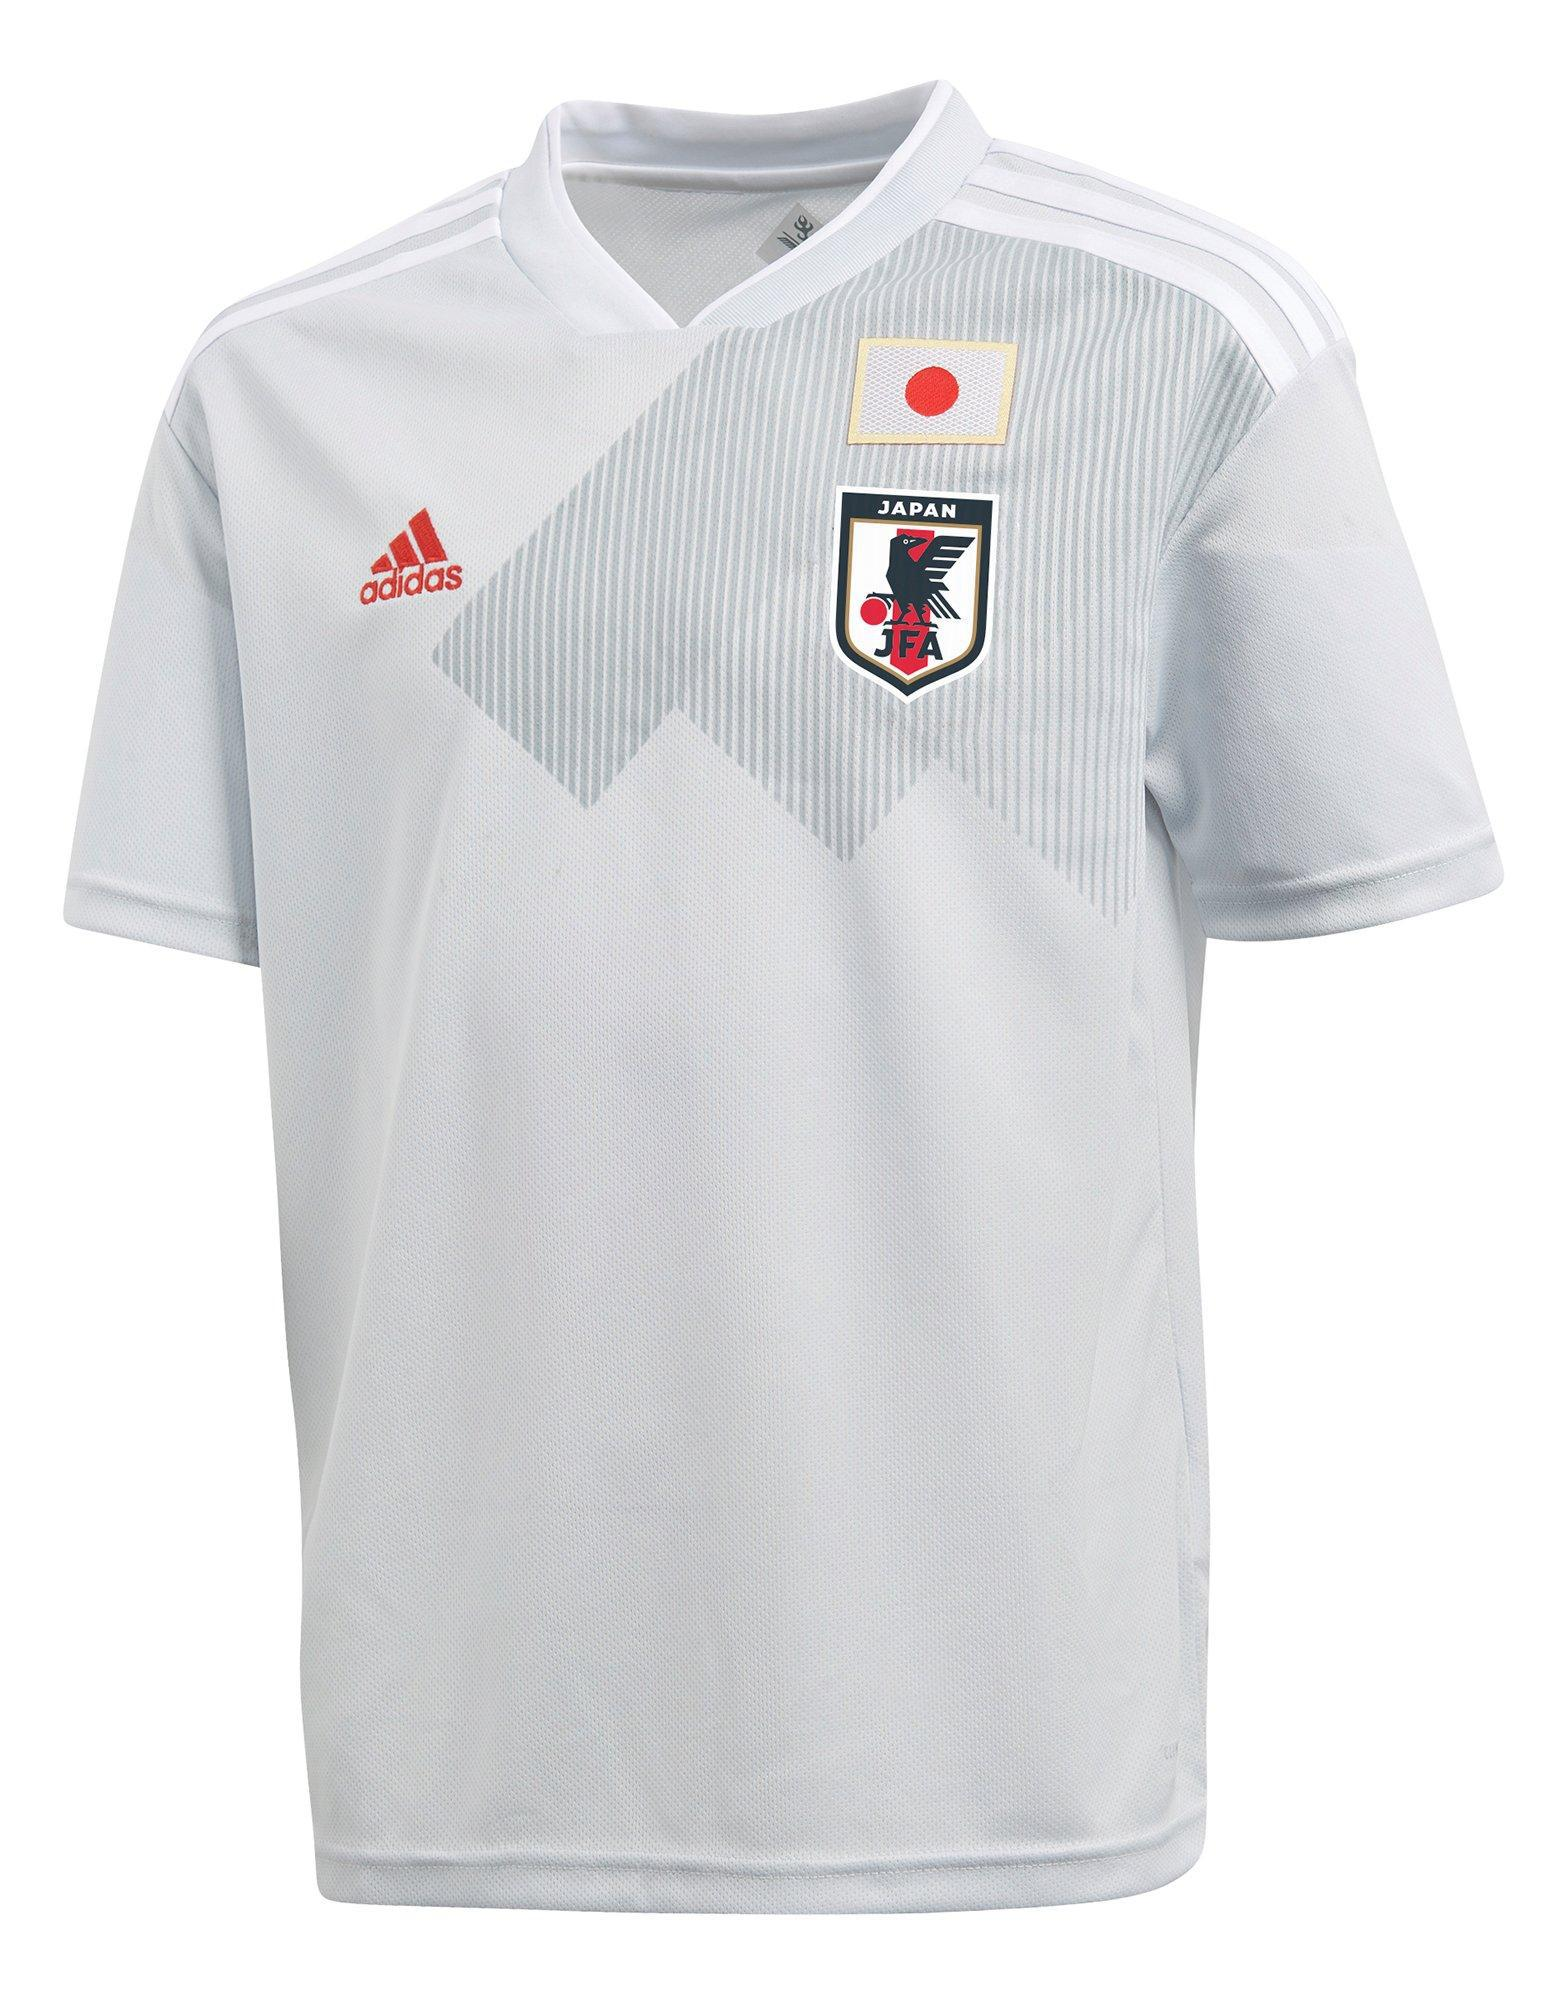 1054d68281a Adidas Japan 2018 Away Shirt In White For Men Lyst. Japan Away 2018 Fifa  World Cup Soccer Jersey